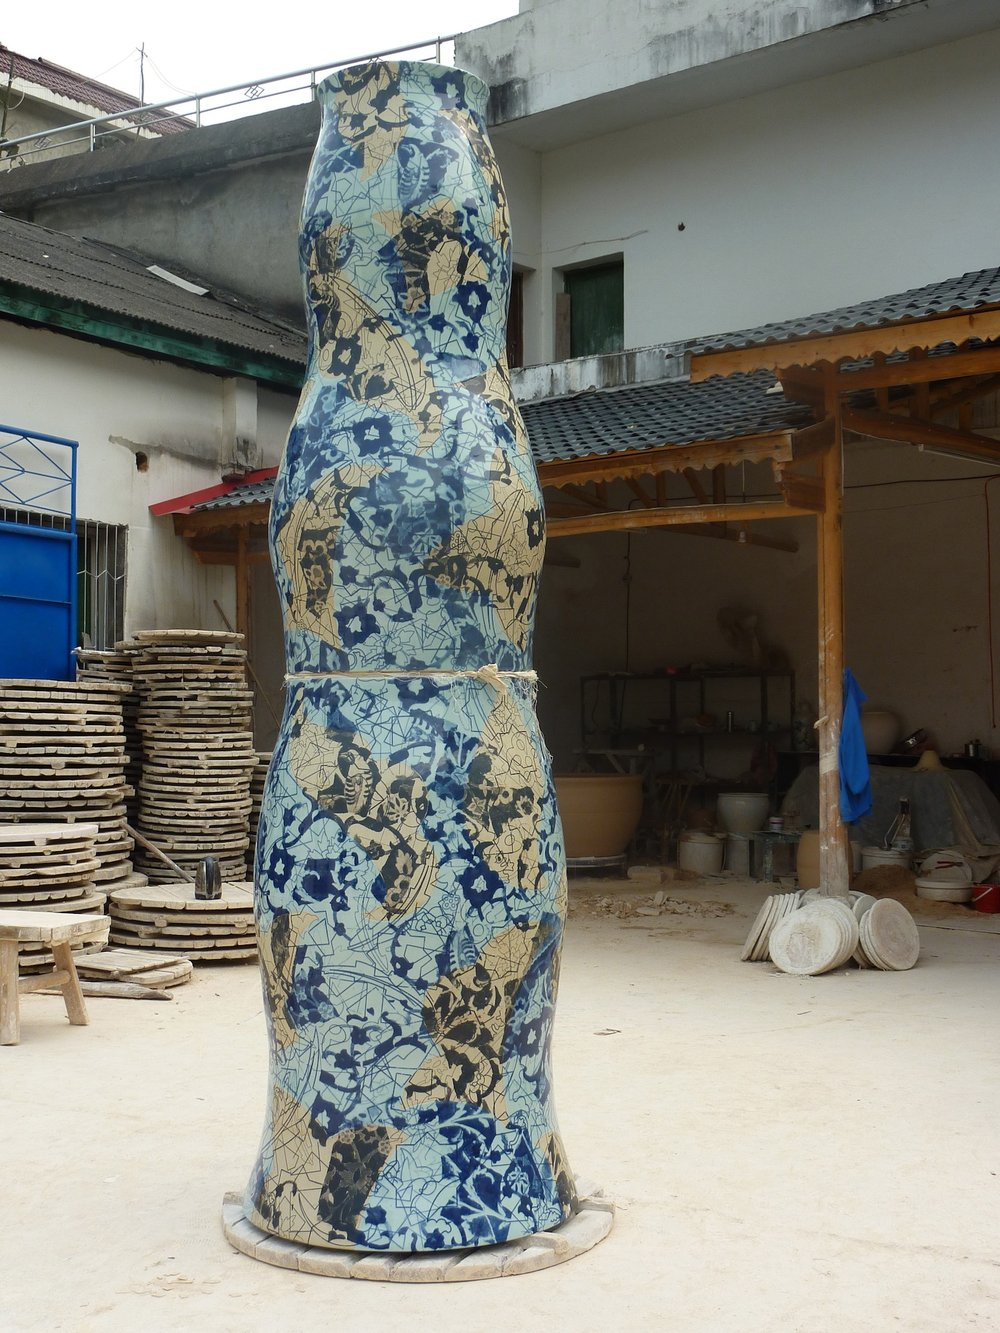 Prototype for Qatar commission in workshop courtyard, 2013